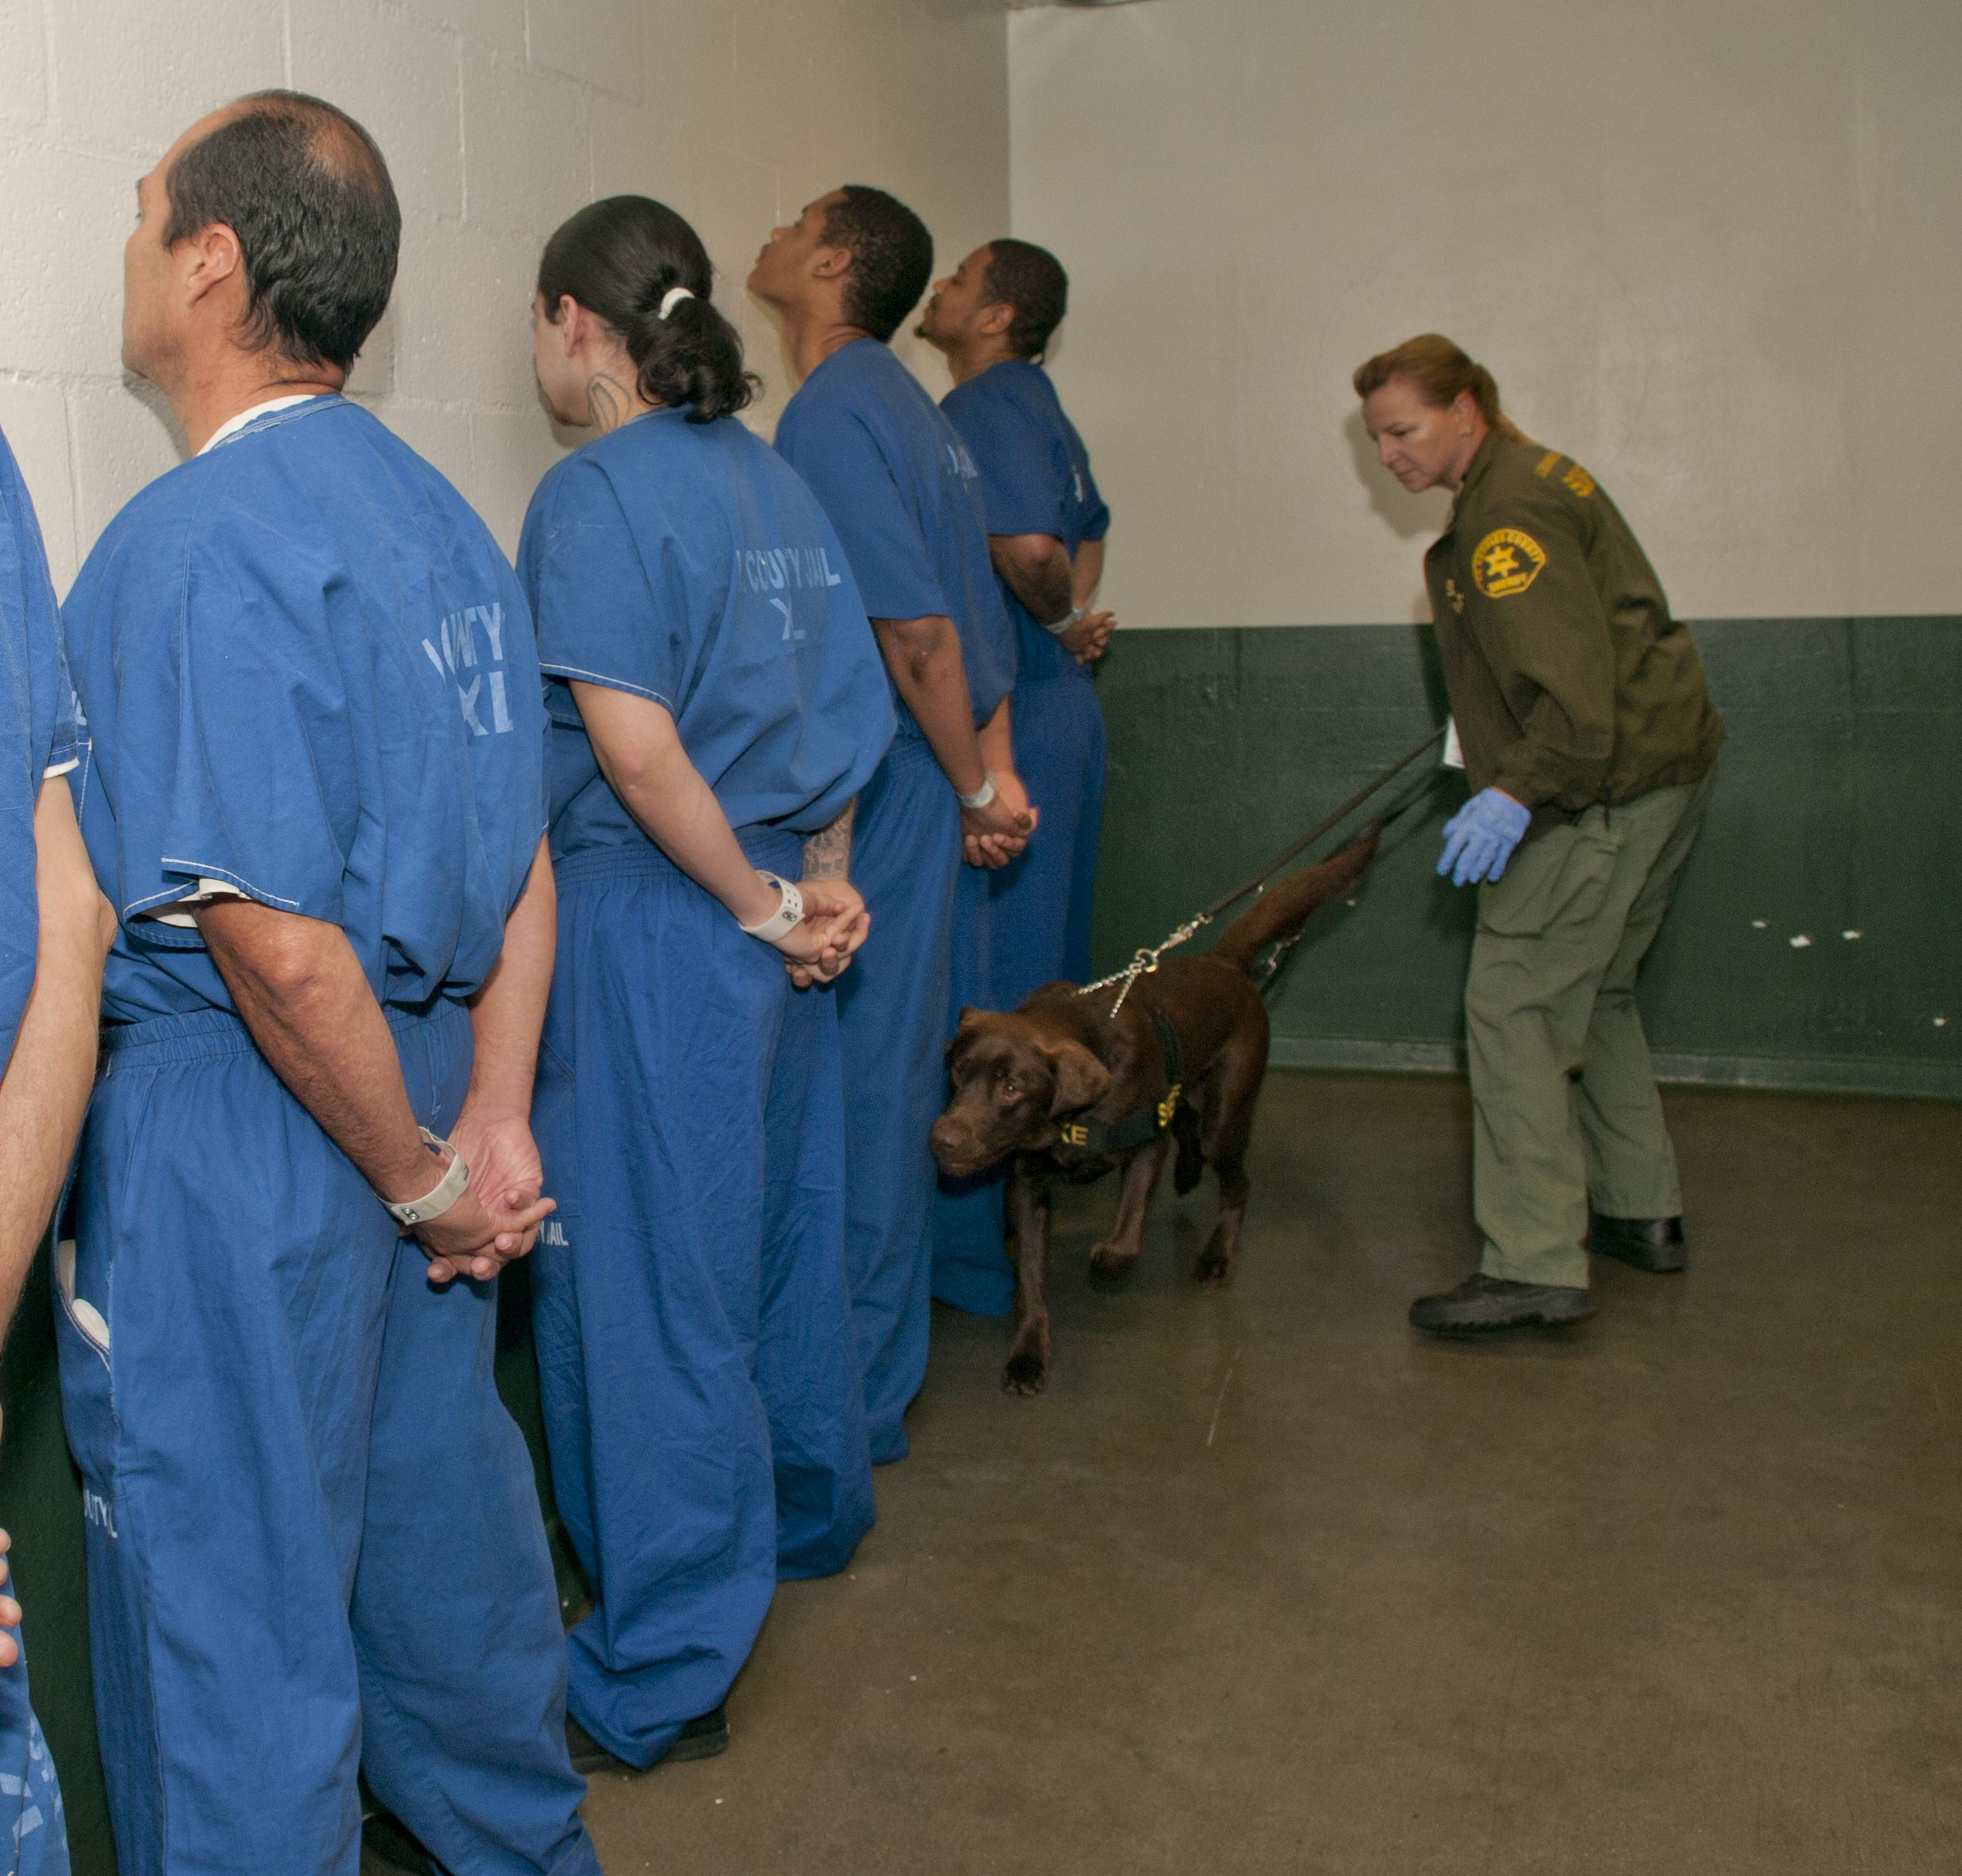 Dog Search Lasd County Jail Los Angeles County Dog Search